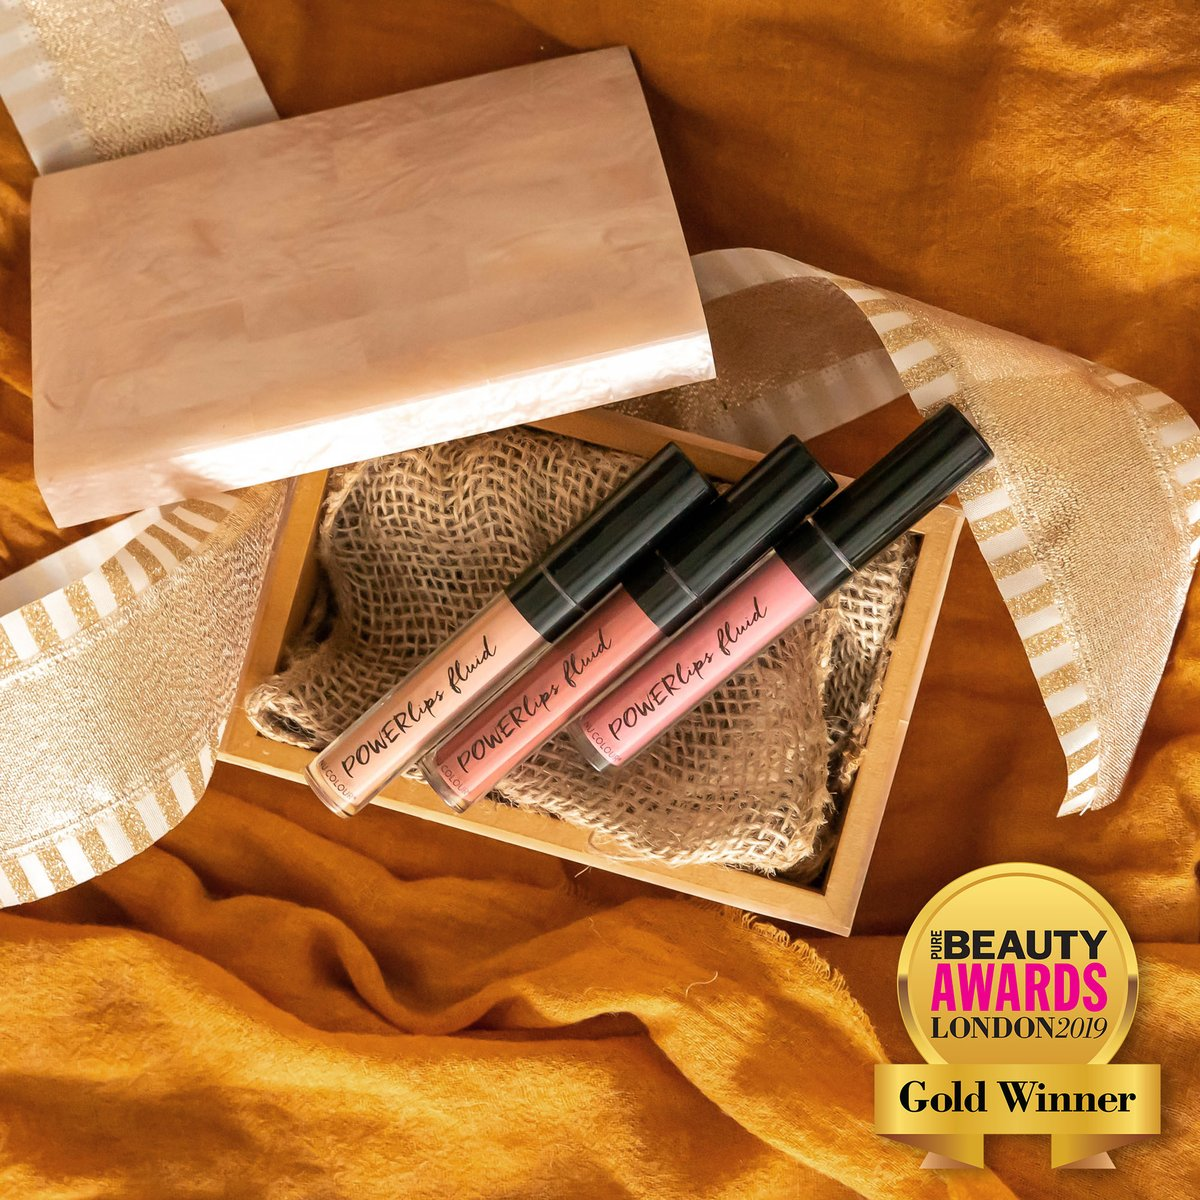 Did you hear that Powerlips Fluid took gold in Best New Lip Product of 2019 at the London Pure Beauty Awards??🎉 It's award-winning, long lasting, and available in beautiful shades for your perfect touch of color.❤️